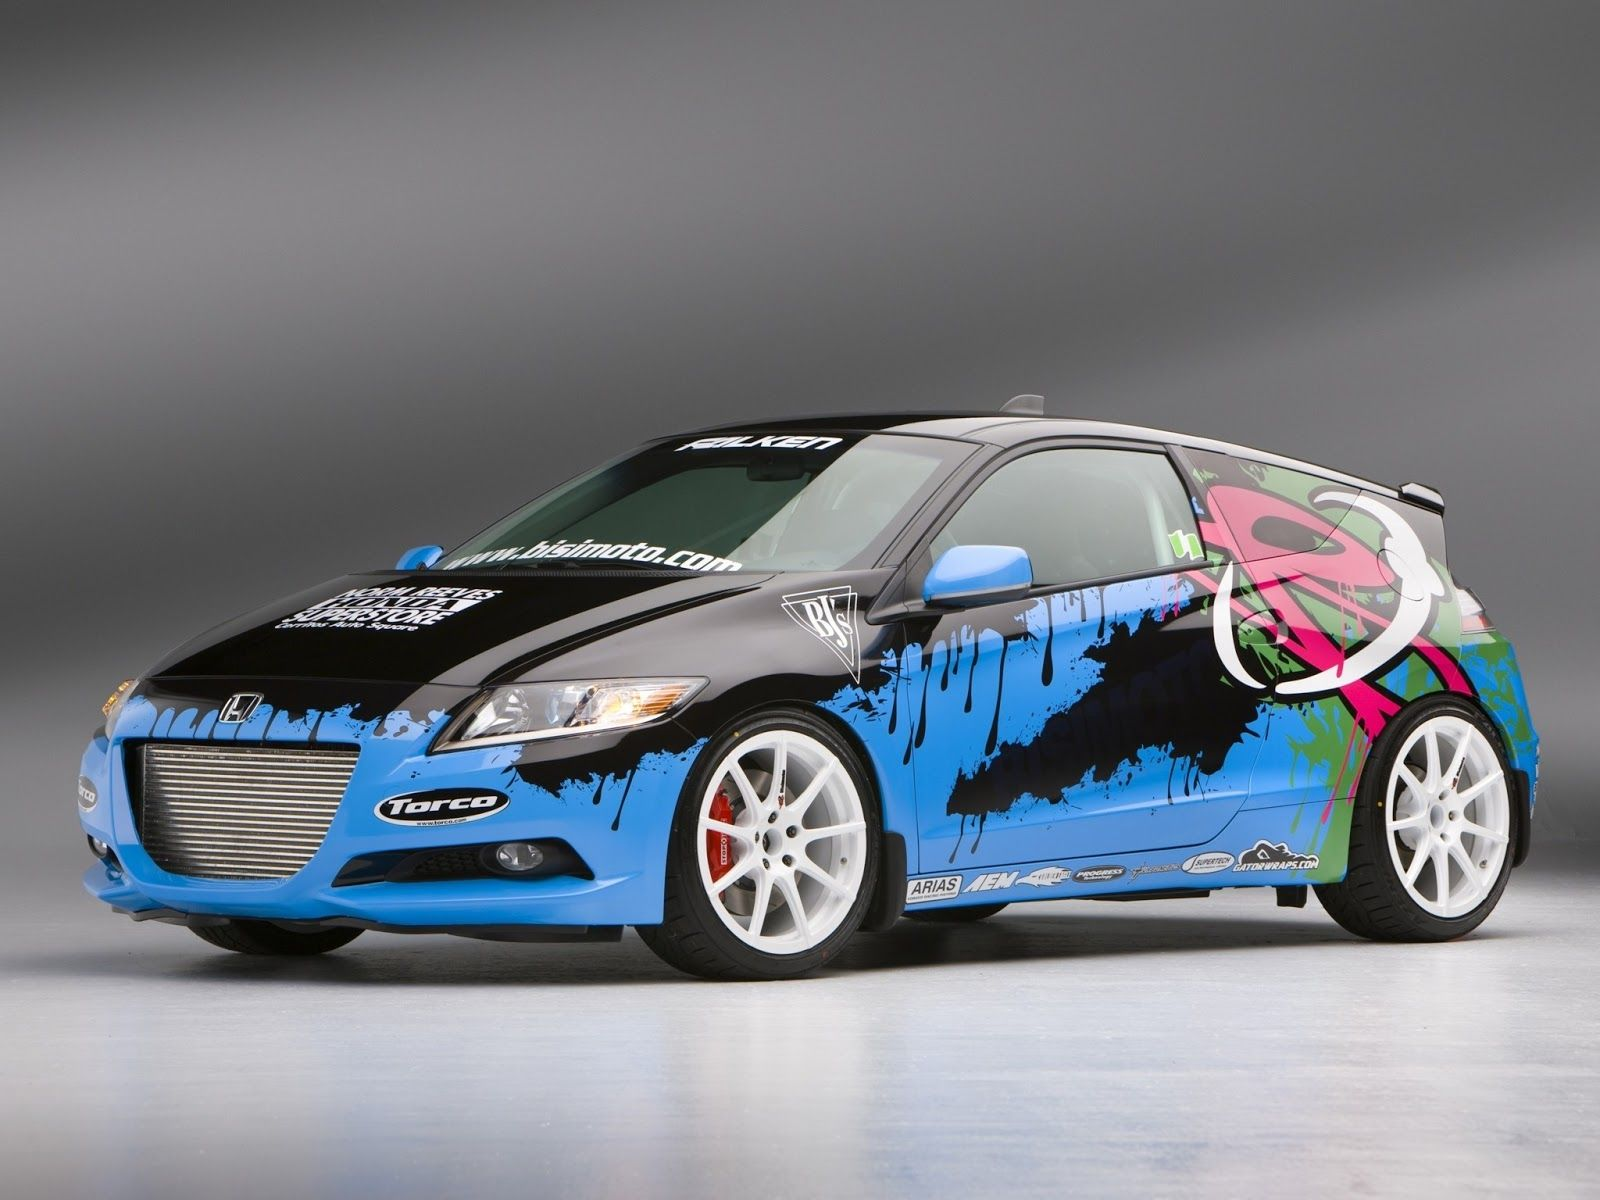 Honda CR Z Concept Wallpaper Honda Cars Wallpapers) U2013 Wallpapers